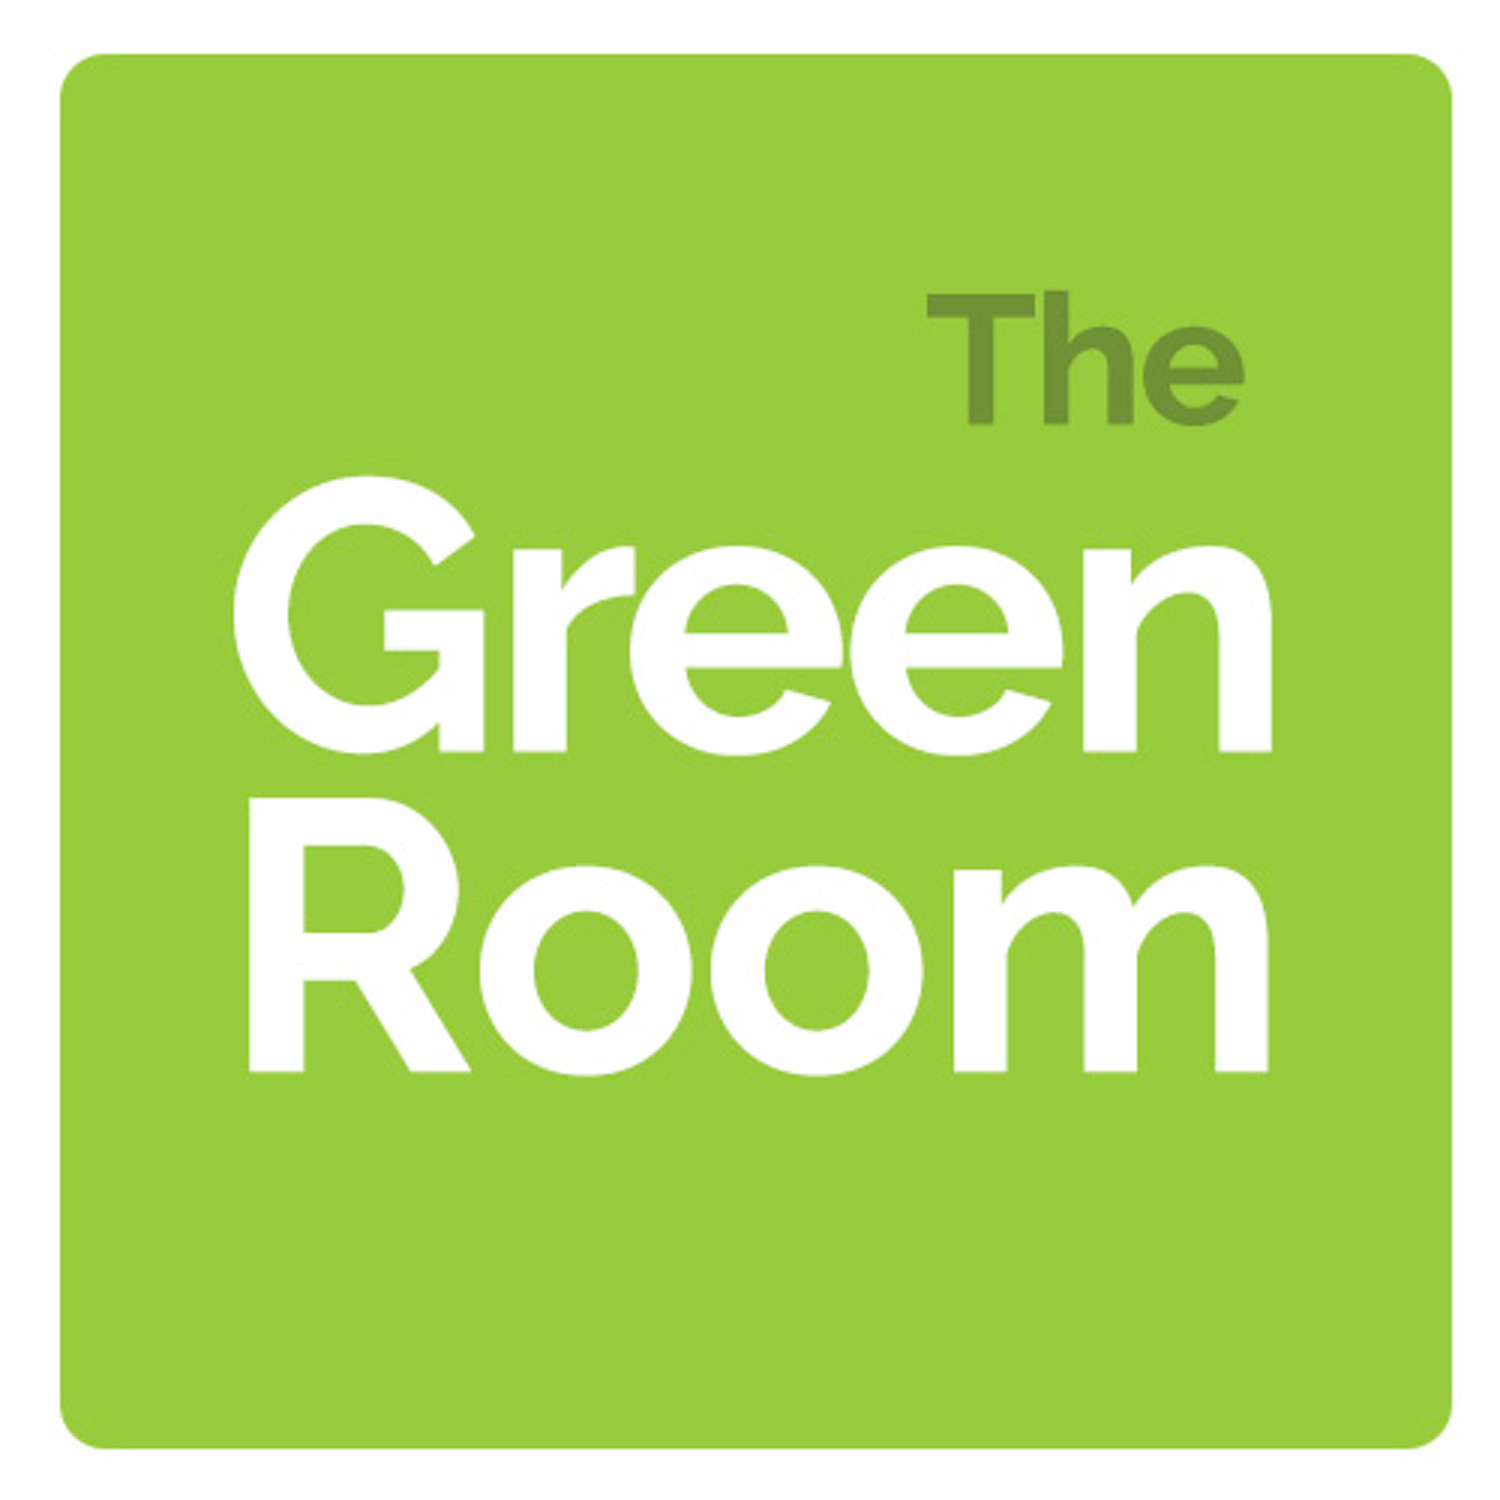 The Green Room by The GreenAge